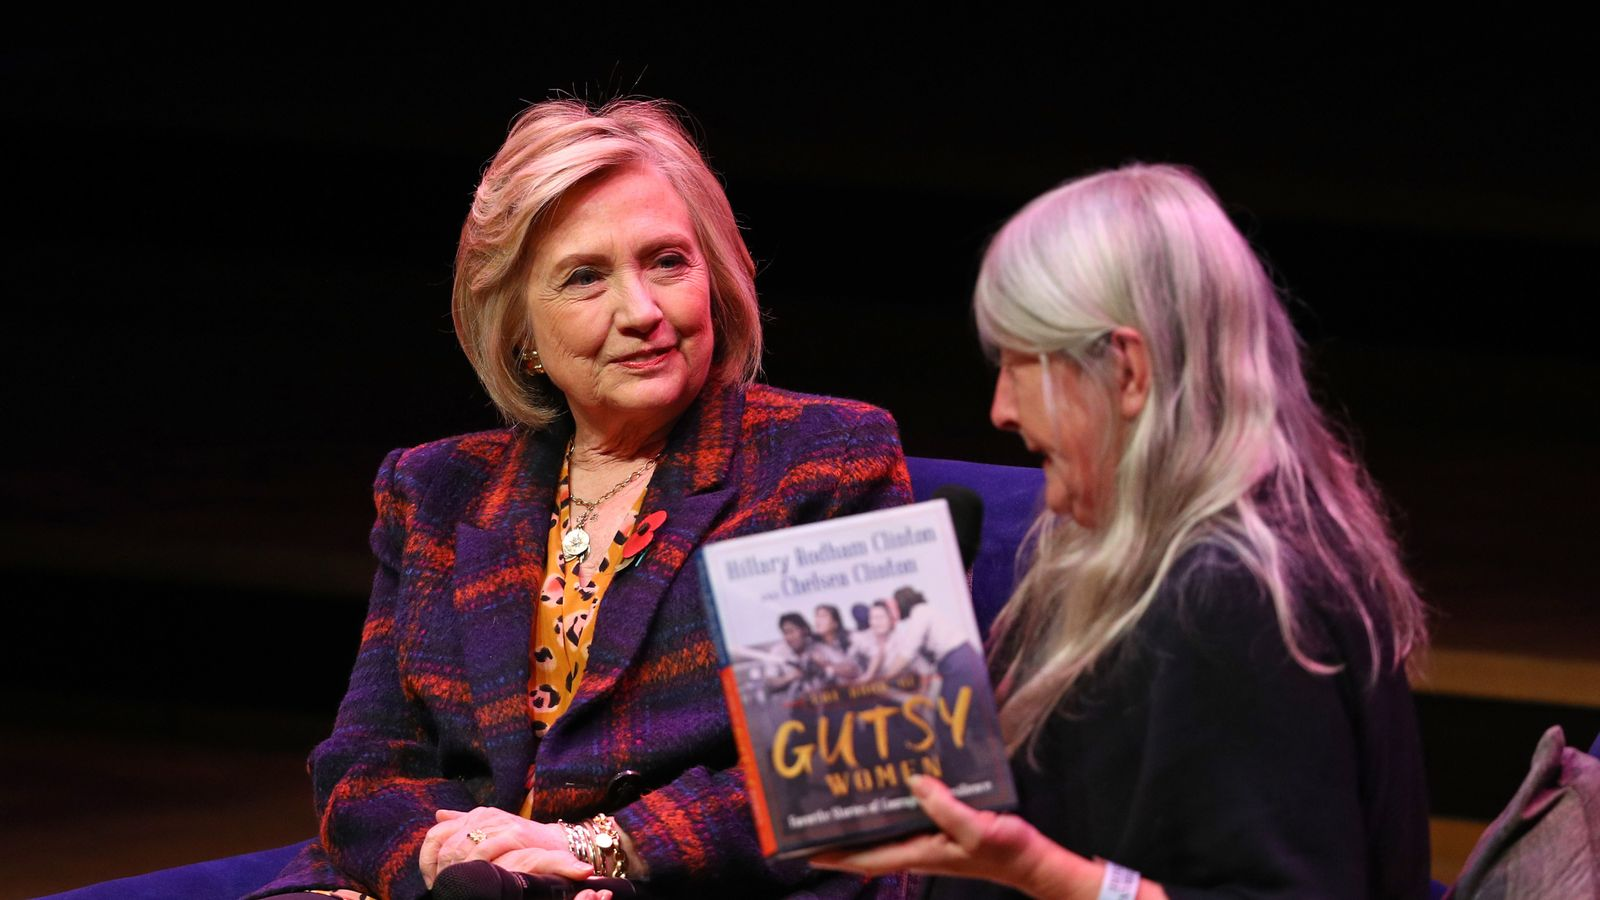 Hillary Clinton 'concerned' about the future path of the UK